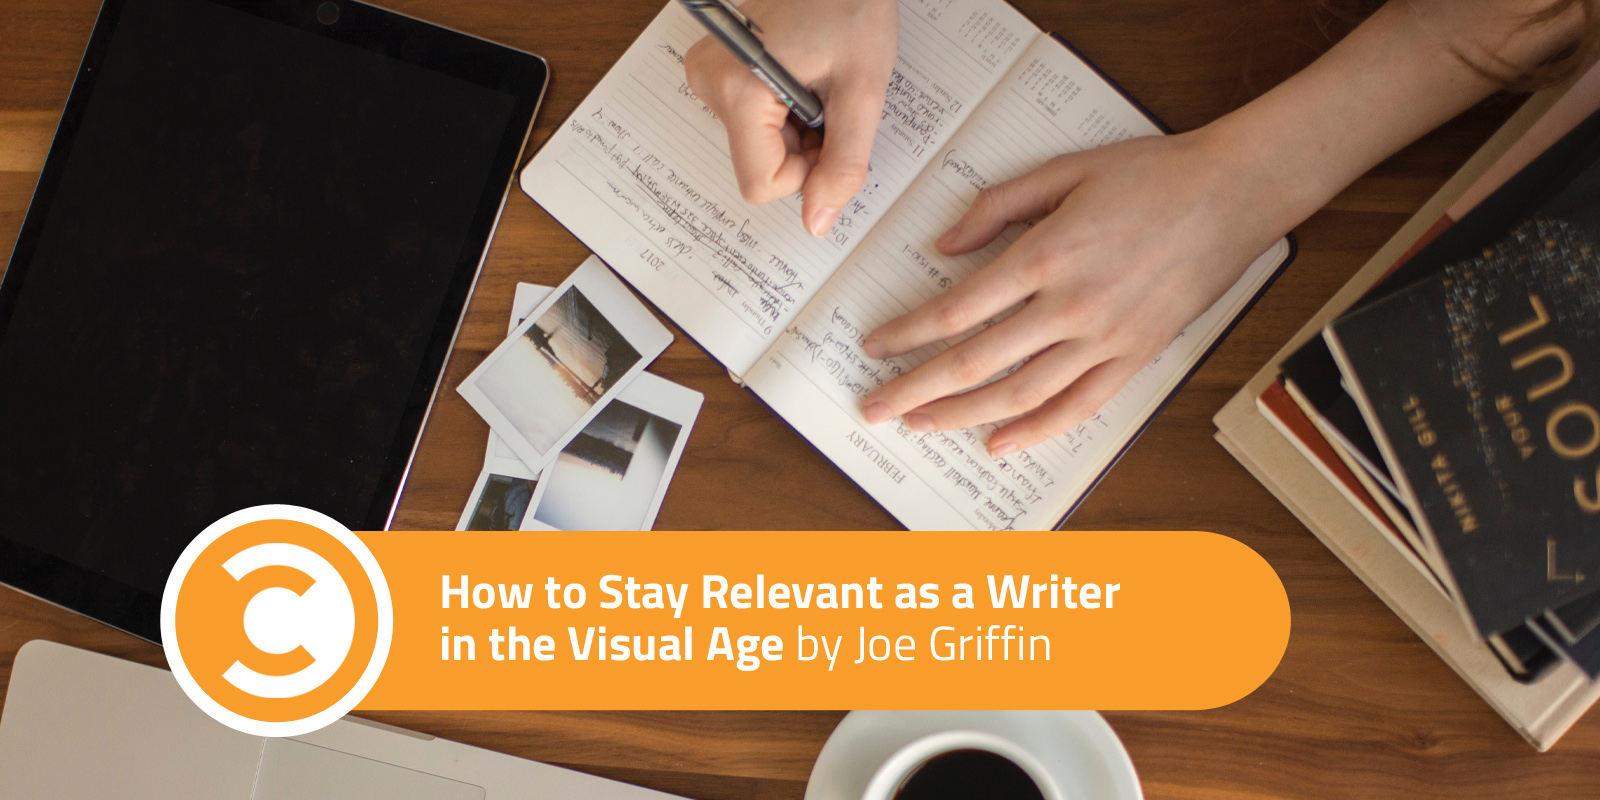 How to Stay Relevant as a Writer in the Visual Age